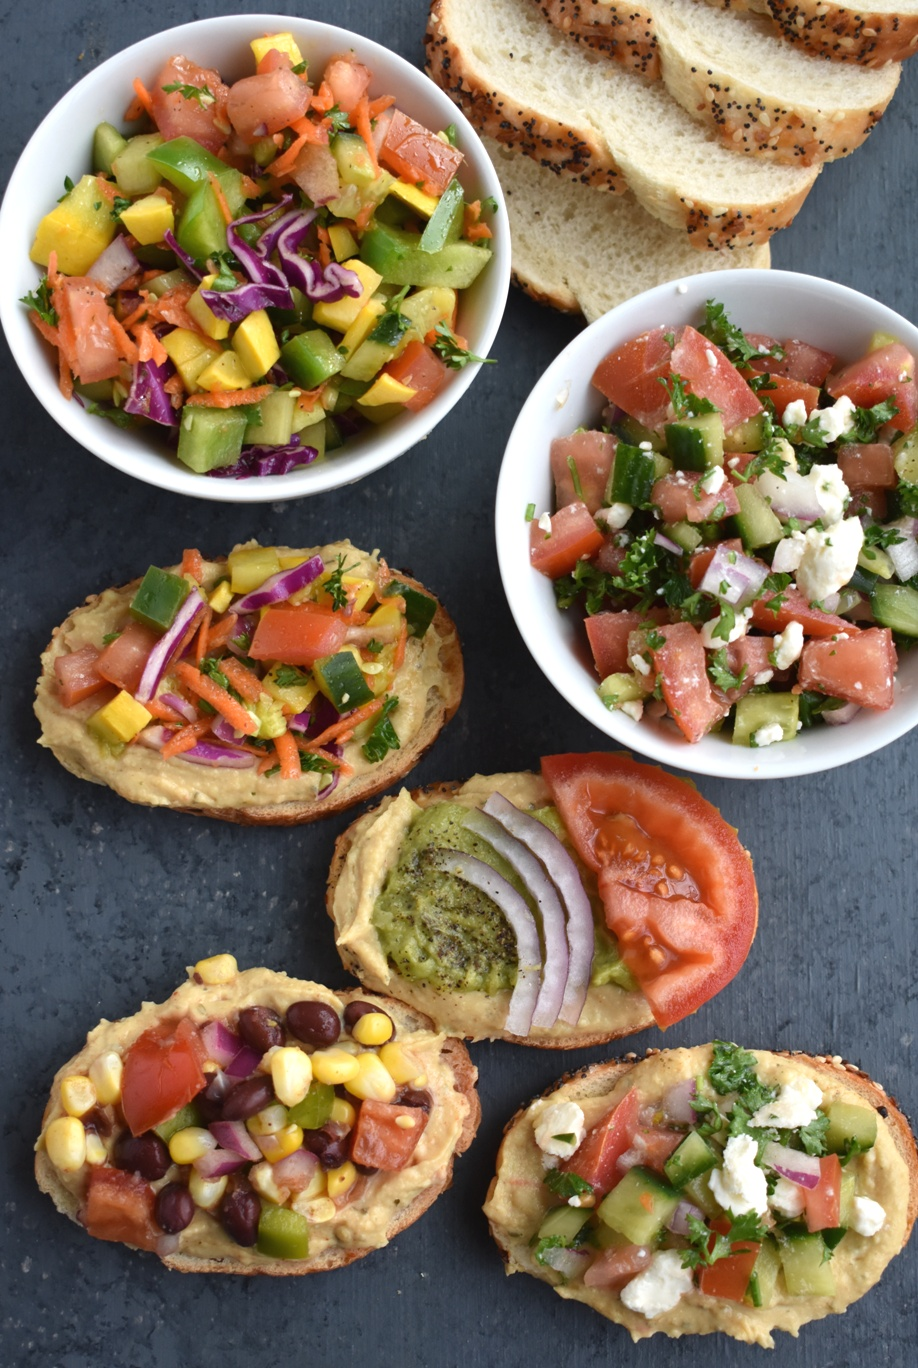 Hummus Toast- 4 Ways features Greek hummus toast, guacamole hummus toast, rainbow vegetable hummus toast and black bean and corn hummus toast for a tasty meal, snack or appetizer ready in 5 minutes each!